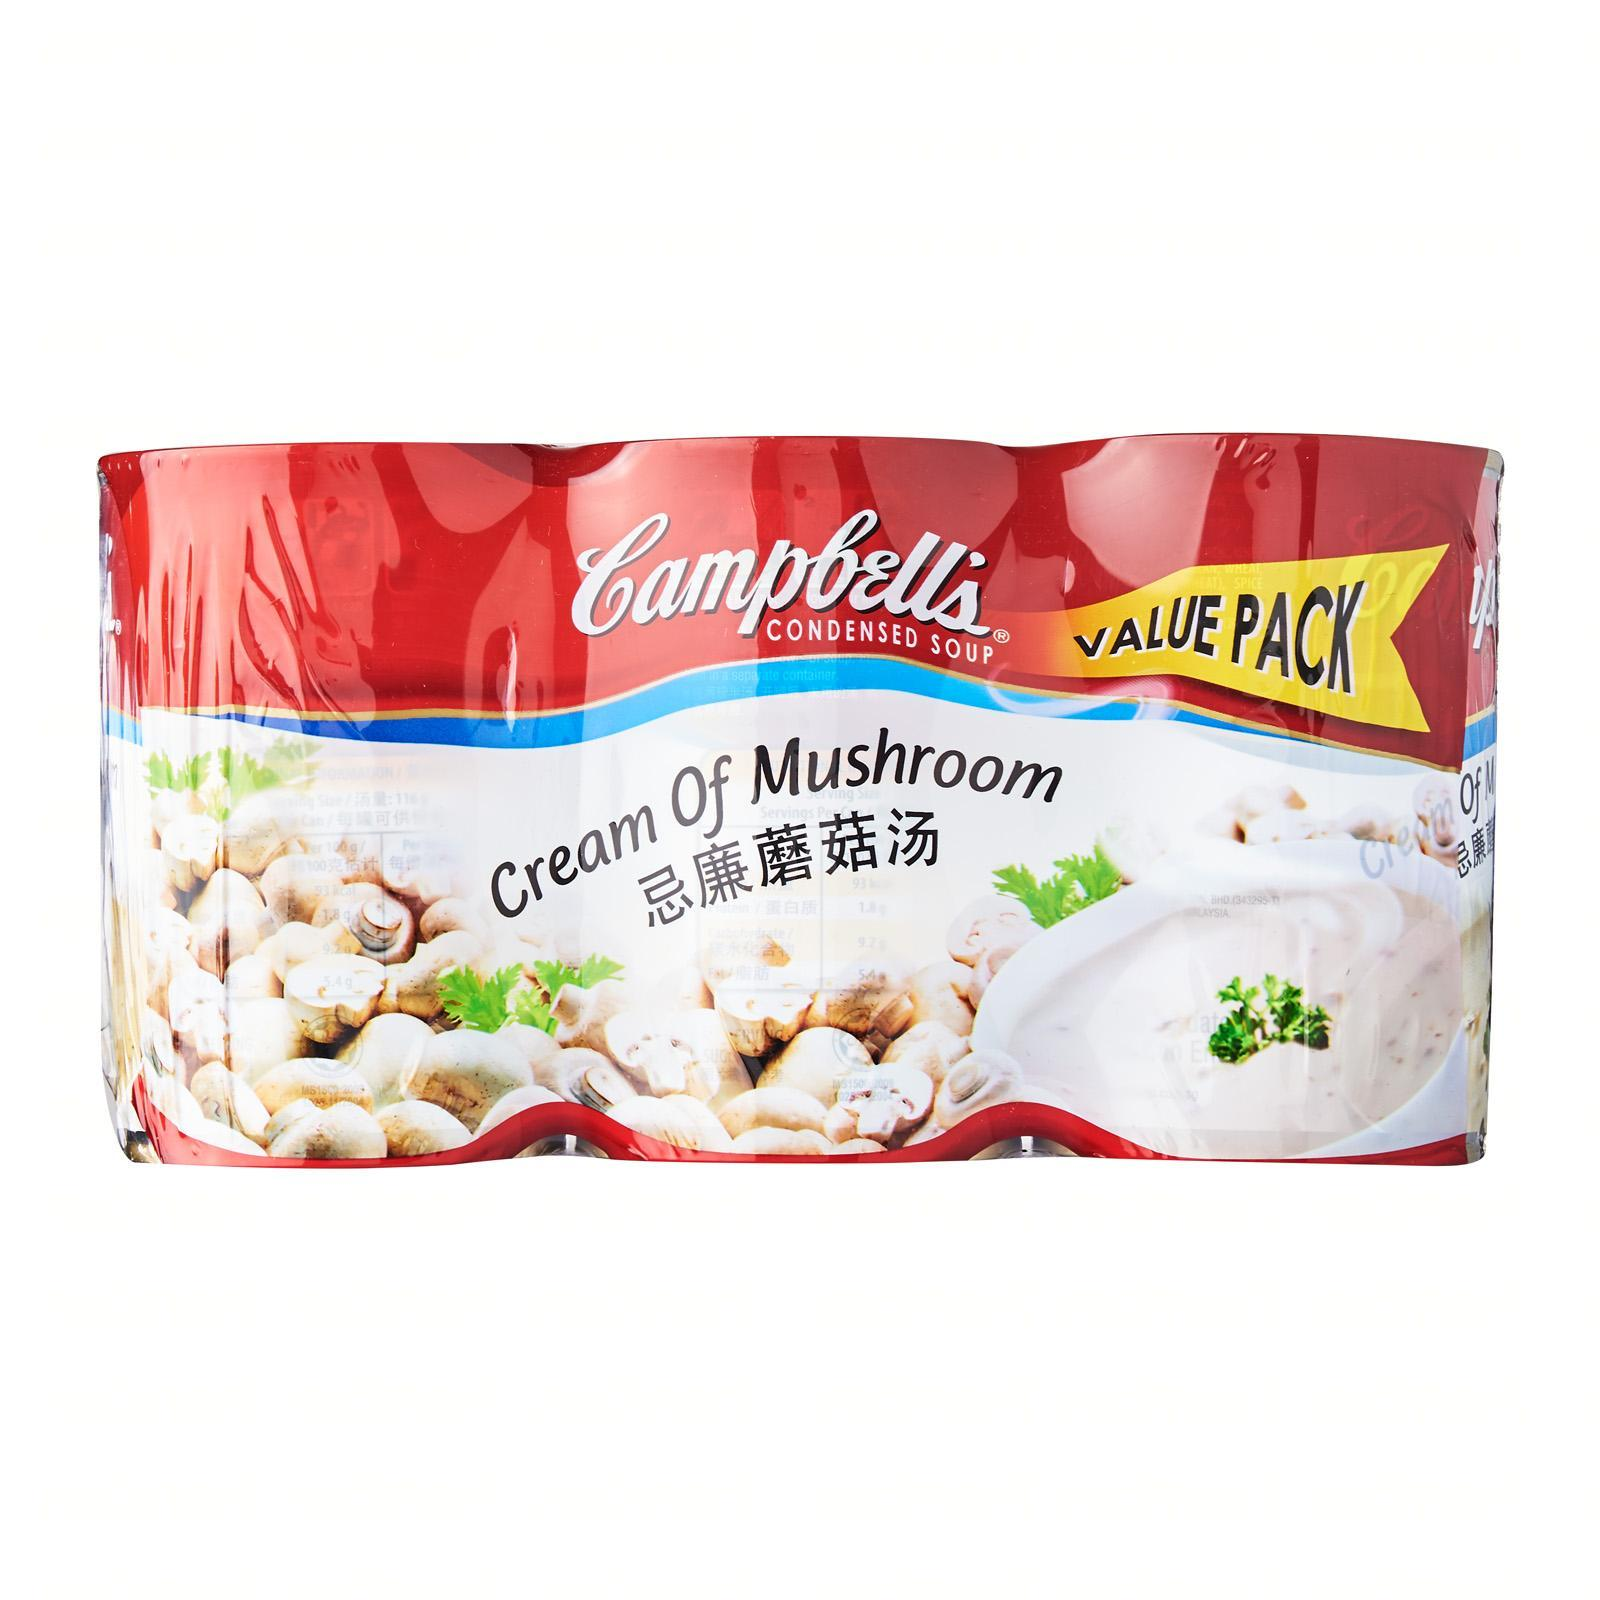 Campbells Cream Of Mushroom 3s X 290g Value Pack Soup By Redmart.